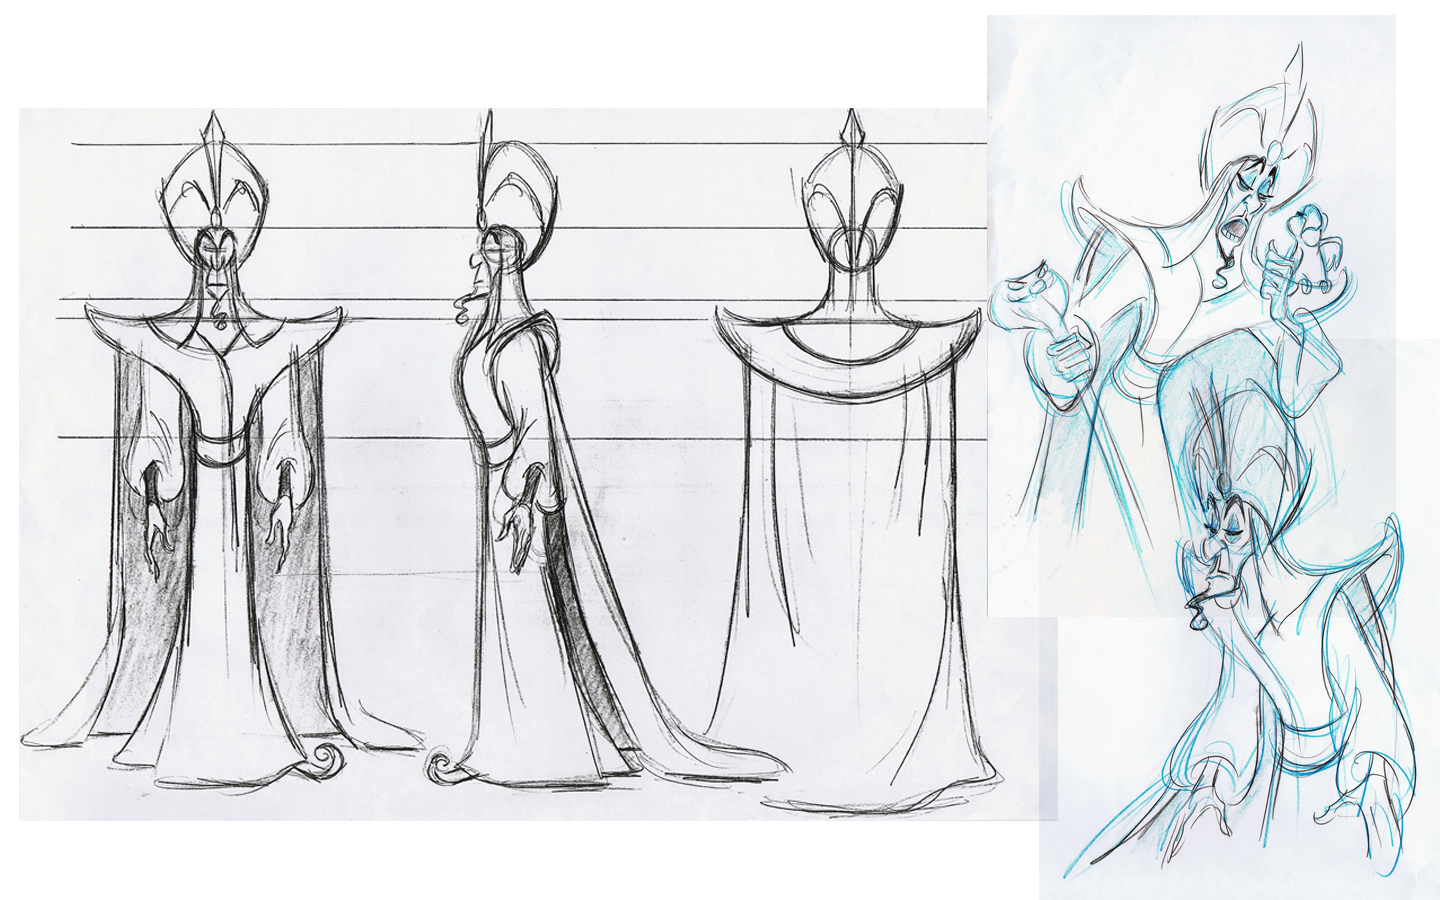 Disney Aladdin Character Design : Roughs and turnaround for jafar from disney s aladdin